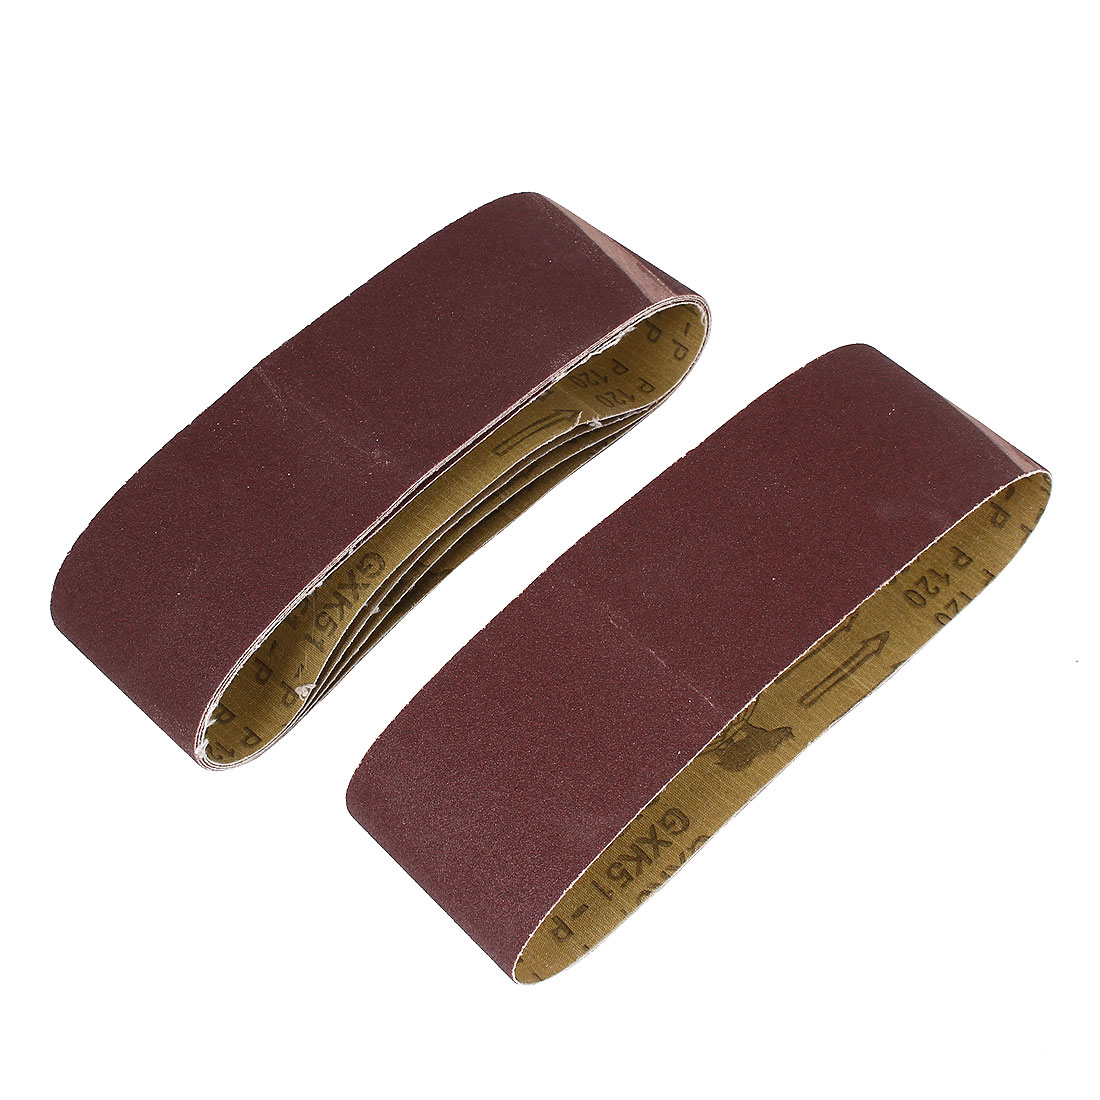 Woodworking 533mmx75mm 120 Grit Abrasive Sanding Belt Sandpaper 5pcs